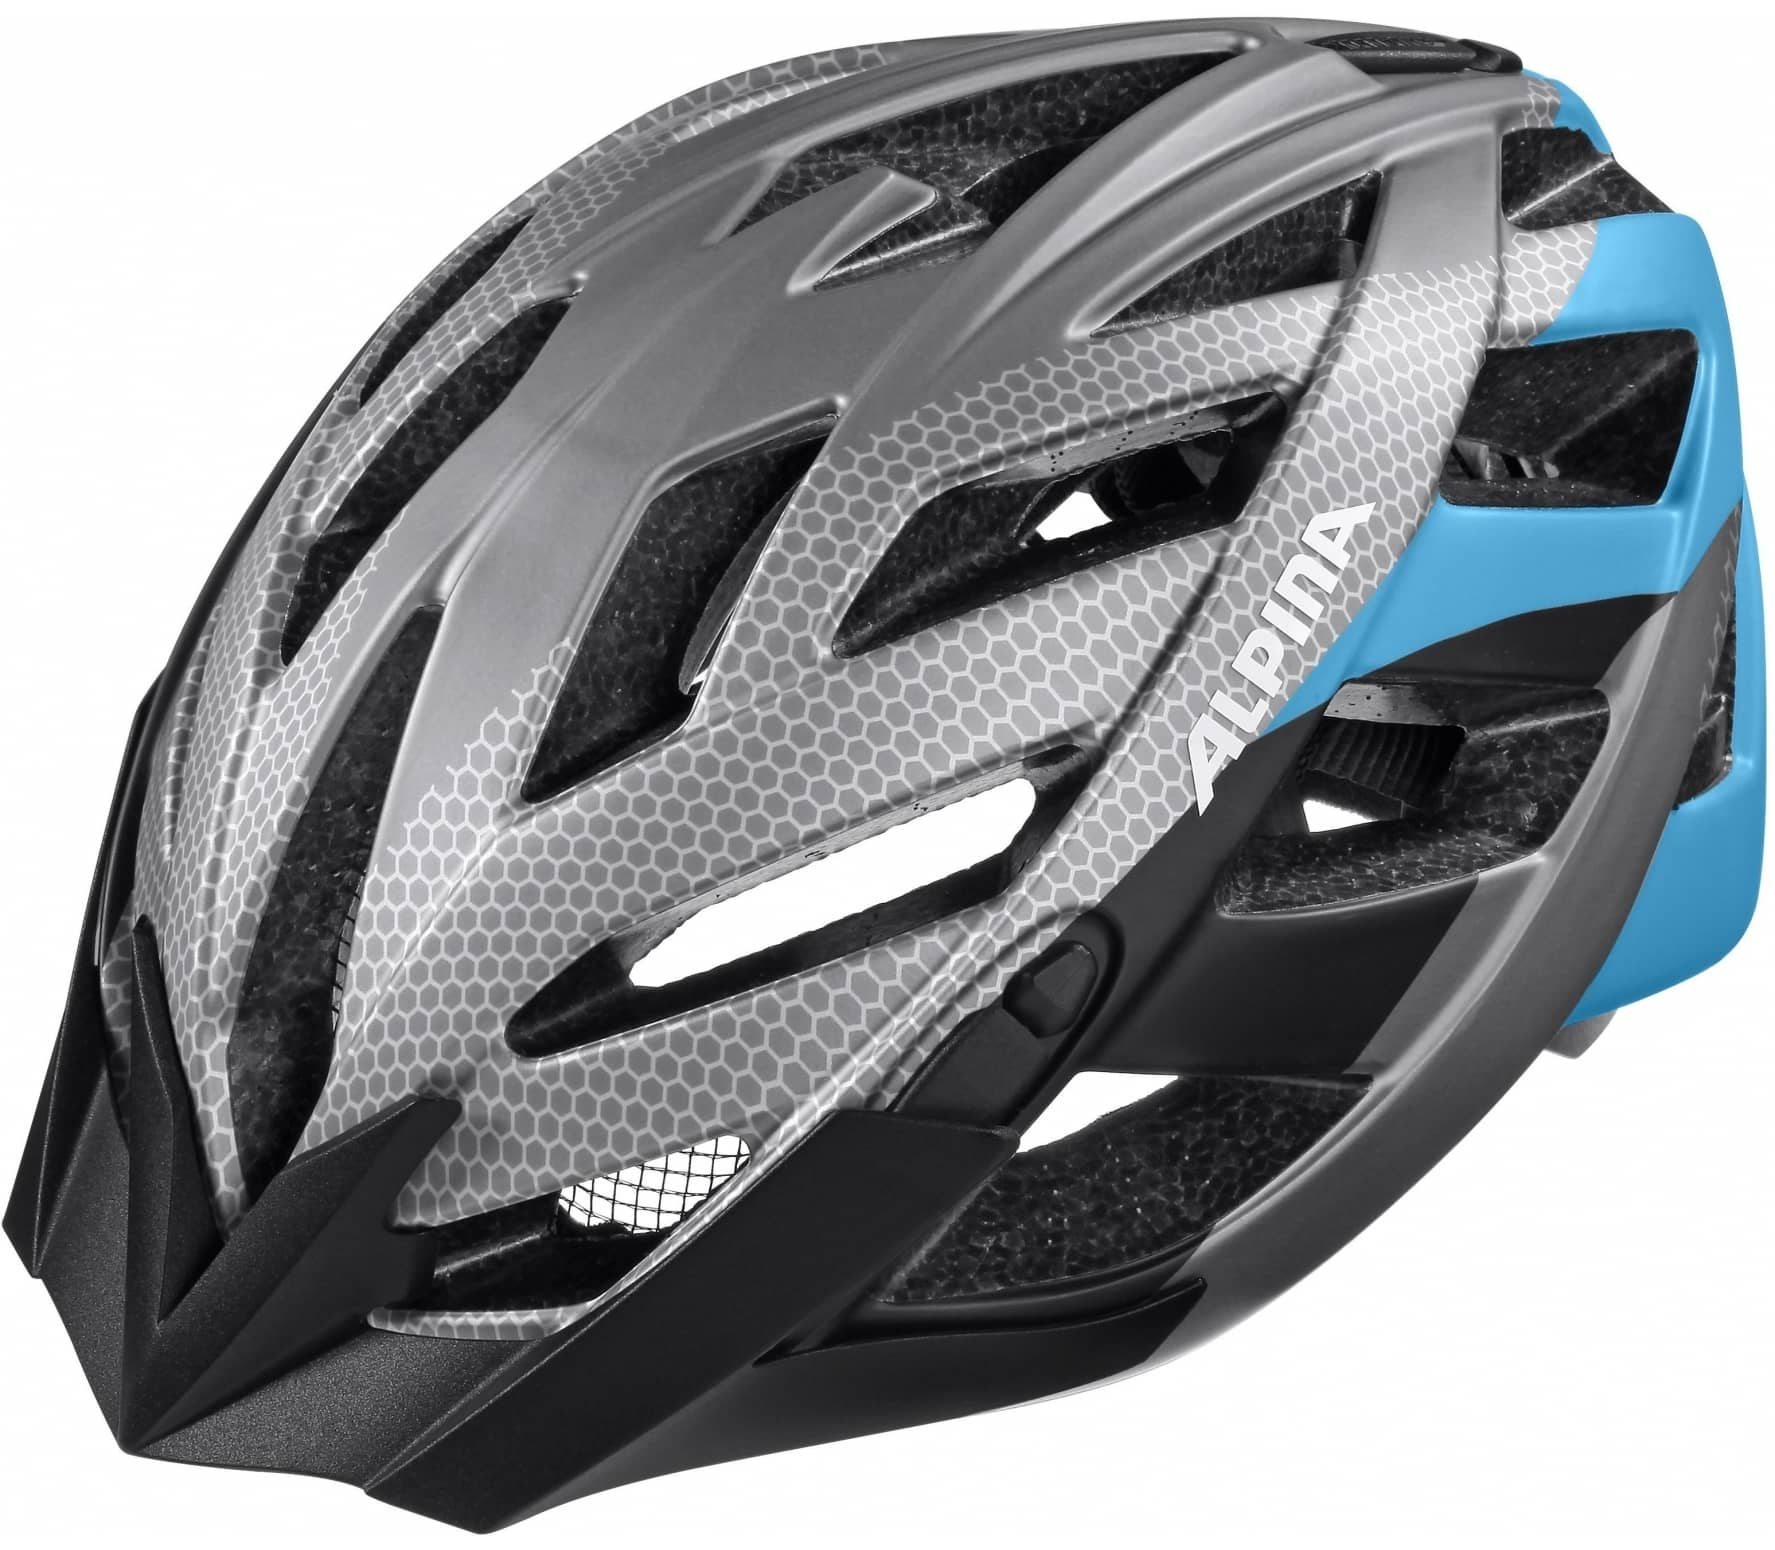 alpina panoma l e unisex bike helm grau blau im online shop von keller sports kaufen. Black Bedroom Furniture Sets. Home Design Ideas